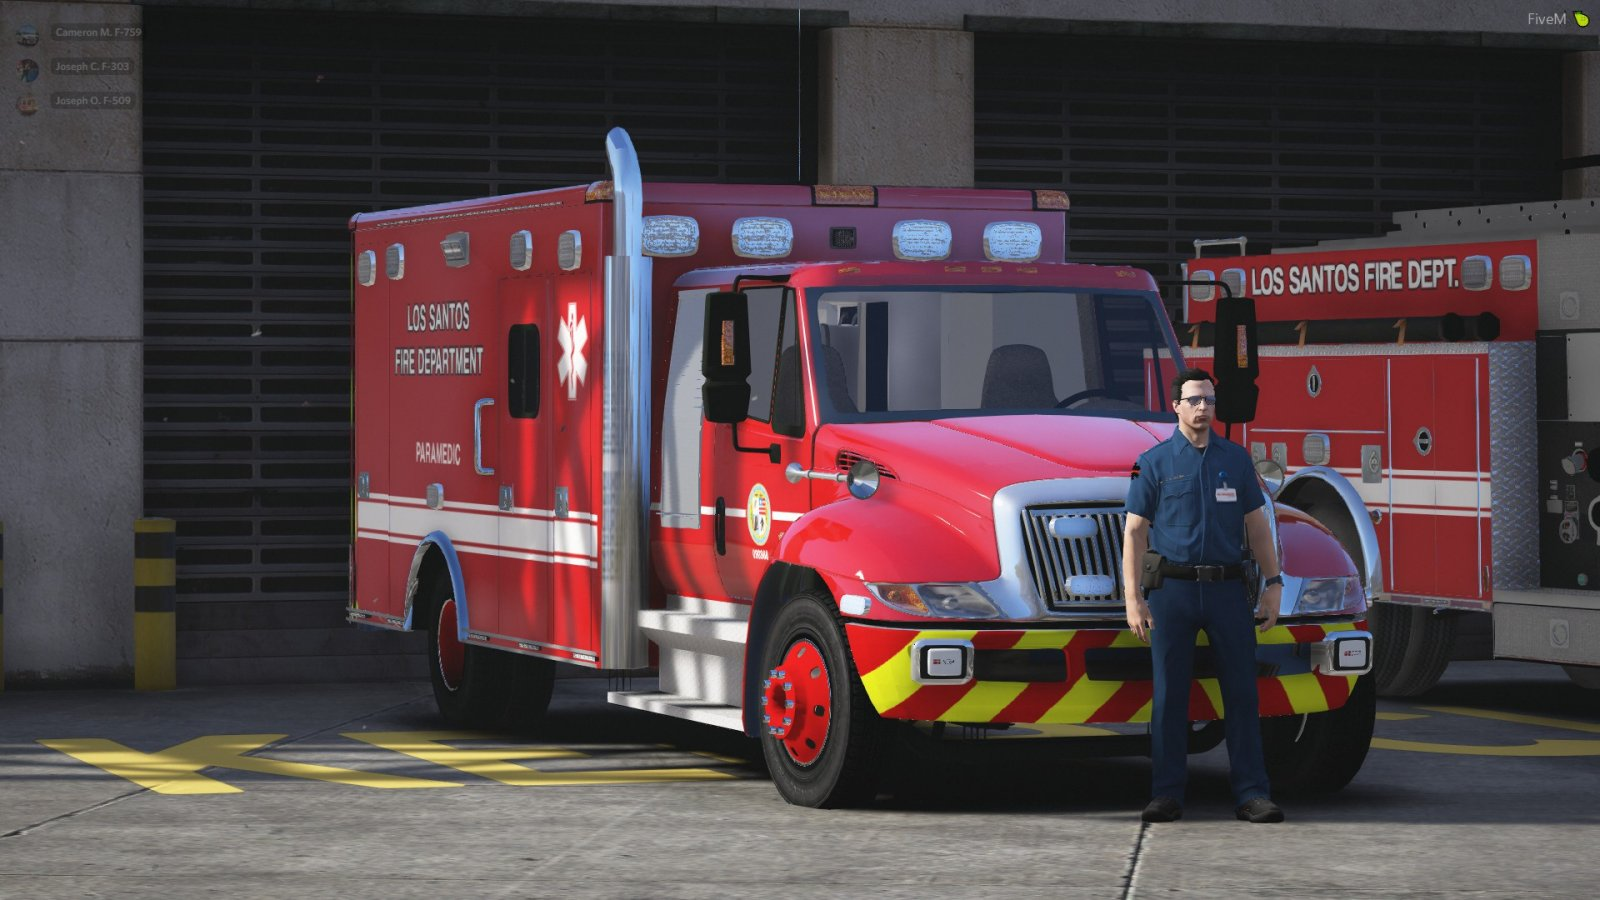 LSFD International Ambulance at Station 4 - Los Santos Fire